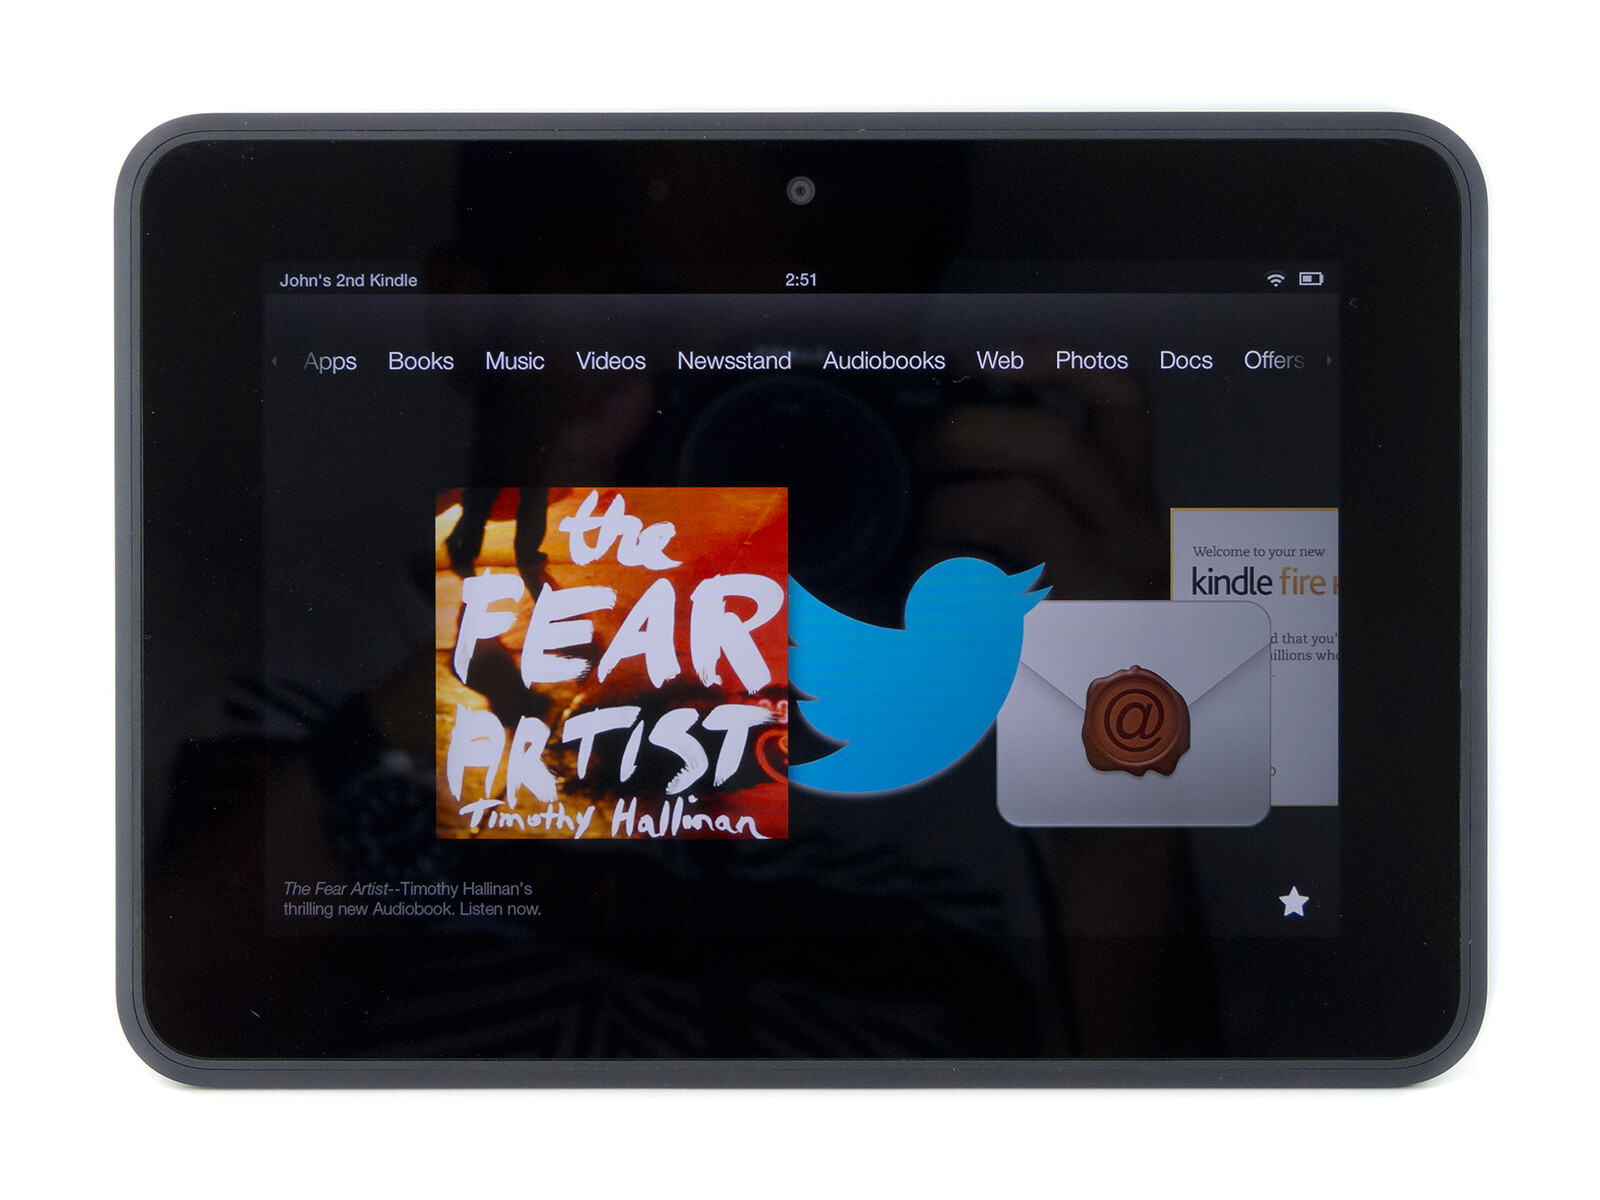 Kindle install google play store on kindle fire hd 7 google apps